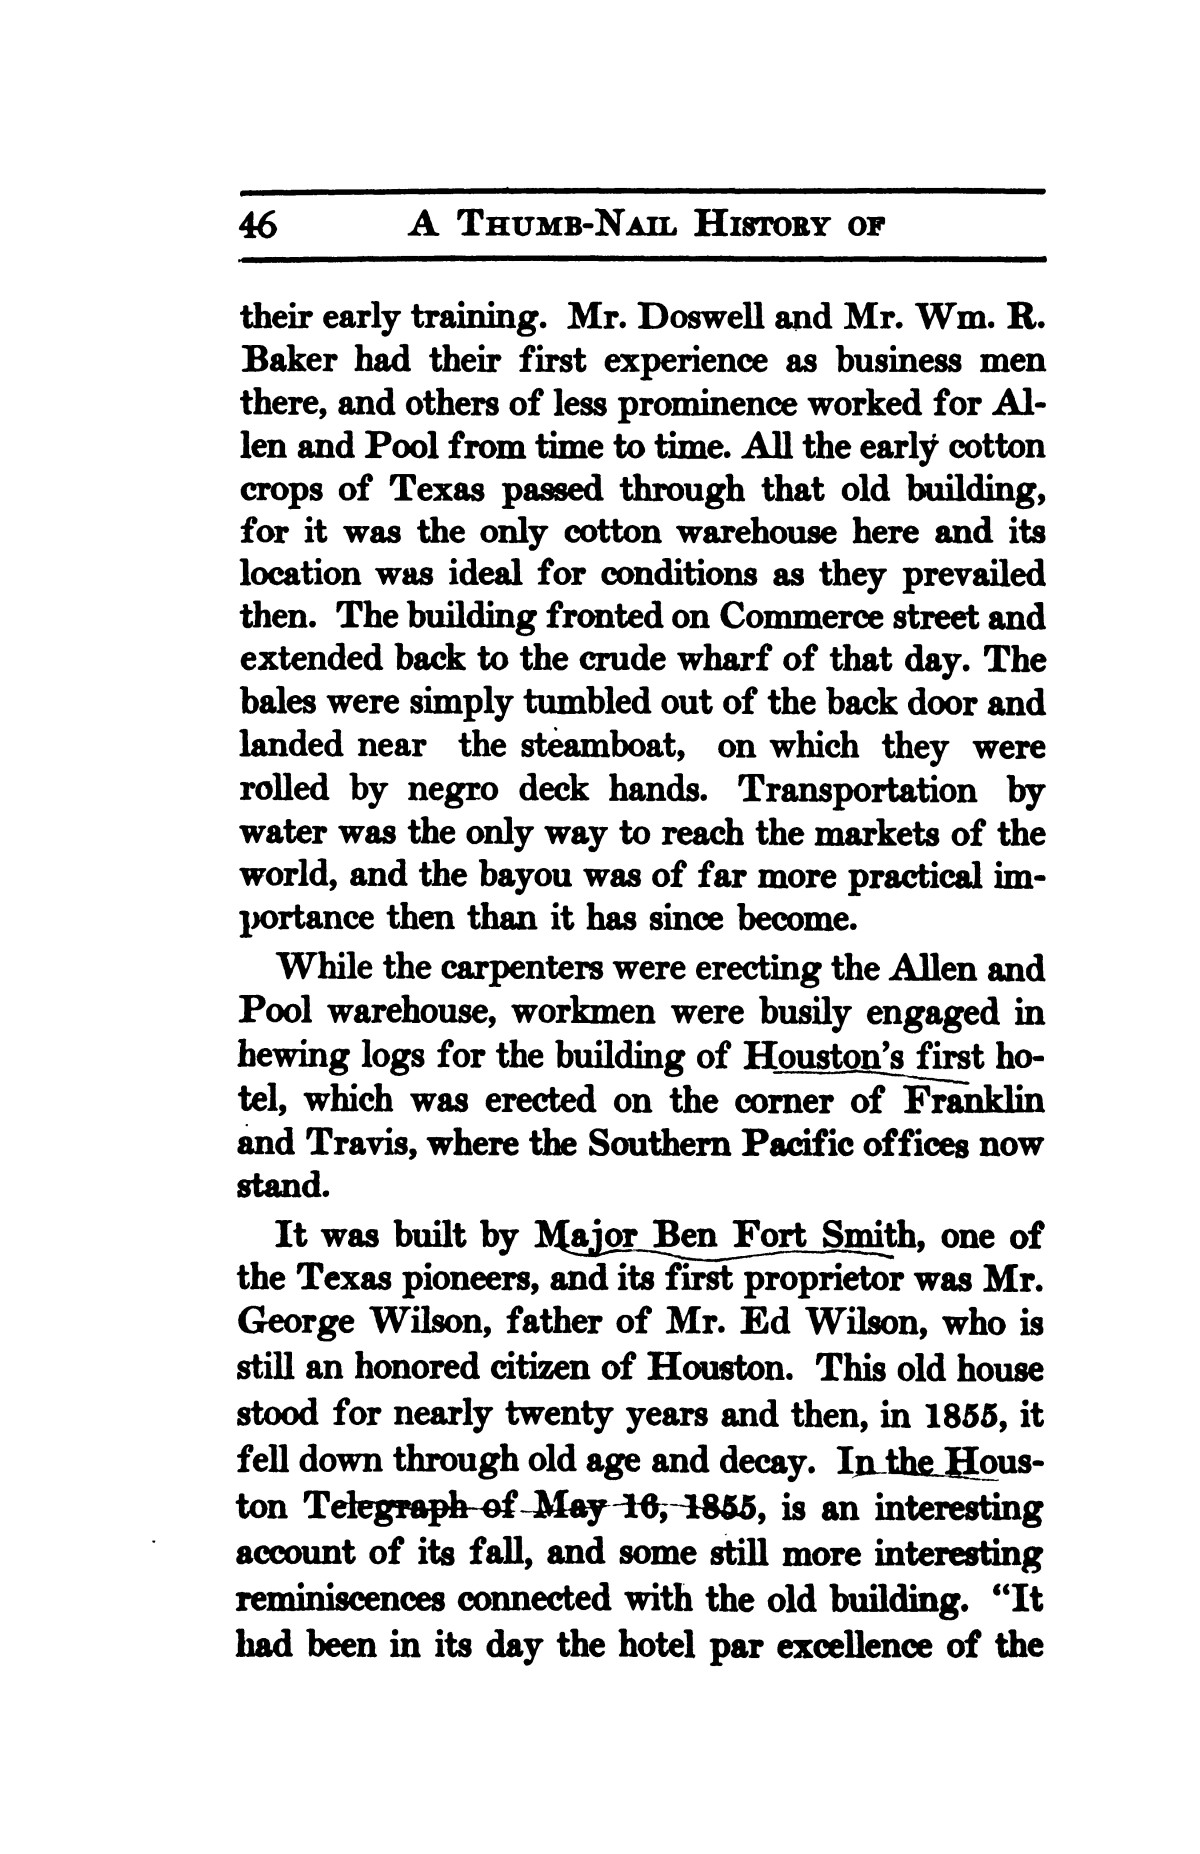 A thumb-nail history of the city of Houston, Texas, from its founding in 1836 to the year 1912                                                                                                      46